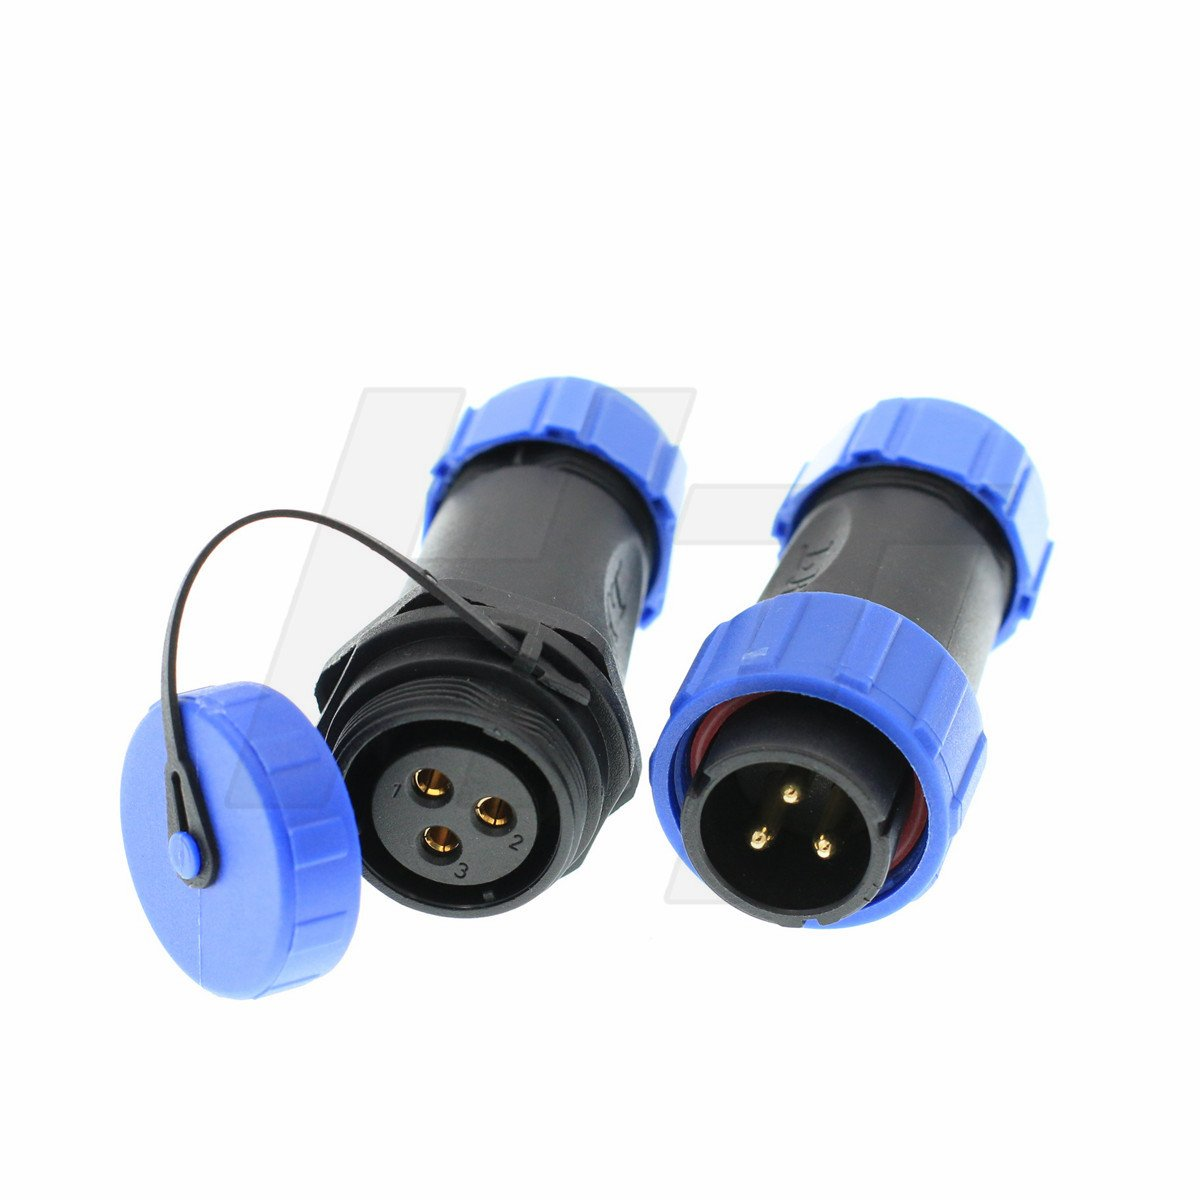 HangTon HE21 3 Pin Waterproof Aviation Quick Disconnect LED/Marine/Lighting Equipment Connector Cable Plug & Socket